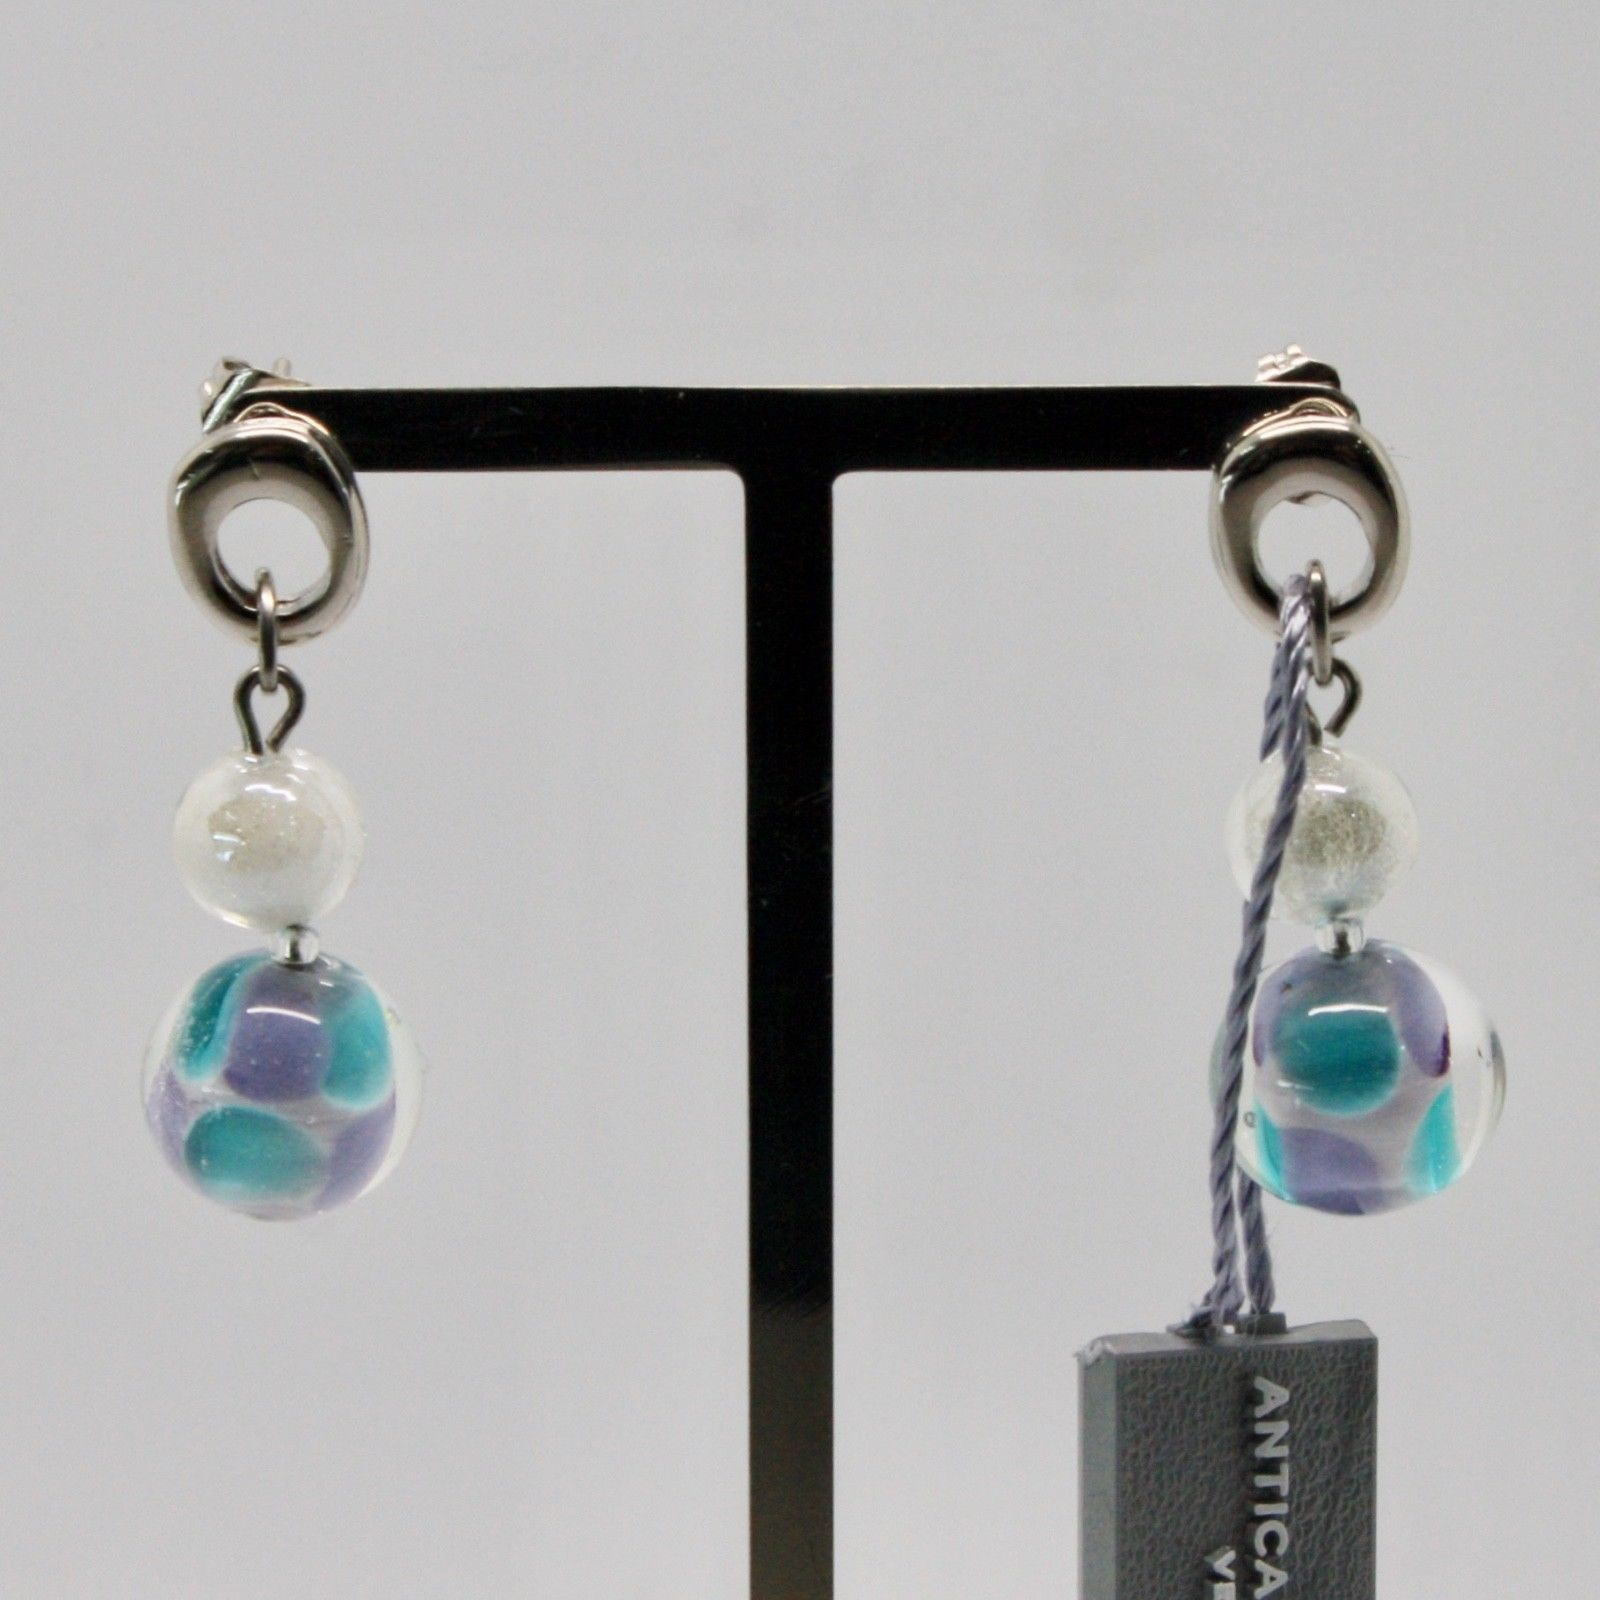 ANTICA MURRINA VENEZIA EARRINGS WITH MULTICOLOR MURANO GLASS AND STEEL OR588A07